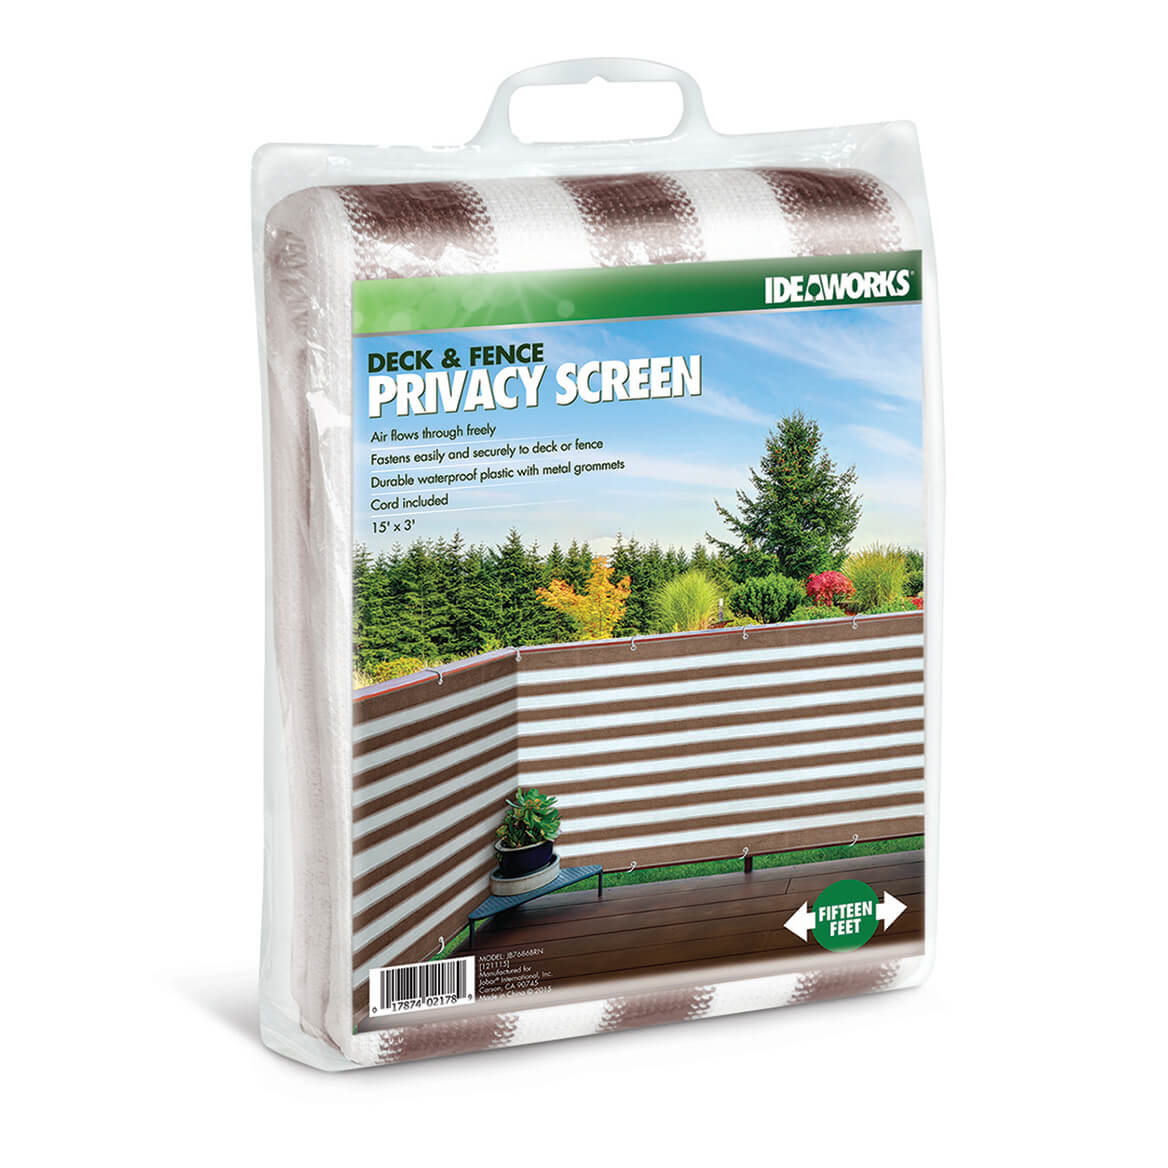 Brown and White Striped Deck & Fence Privacy Screen Offering instant privacy for patio, balcony or deck, this stylish striped deck & fence privacy screen blocks revealing views--so you can relax outdoors without awkward exposure to neighbors, the street or the sidewalk. The breathable woven fence screening secures easily to fence or deck with included cord, or weaves between deck posts or railings, and can be placed strategically to create custom privacy without impeding light or airflow. Shielding you with a full 3 feet of height, the 15-foot long garden screening is crafted of durable waterproof polyester netting with reinforced seams and metal grommets. Brown/white.